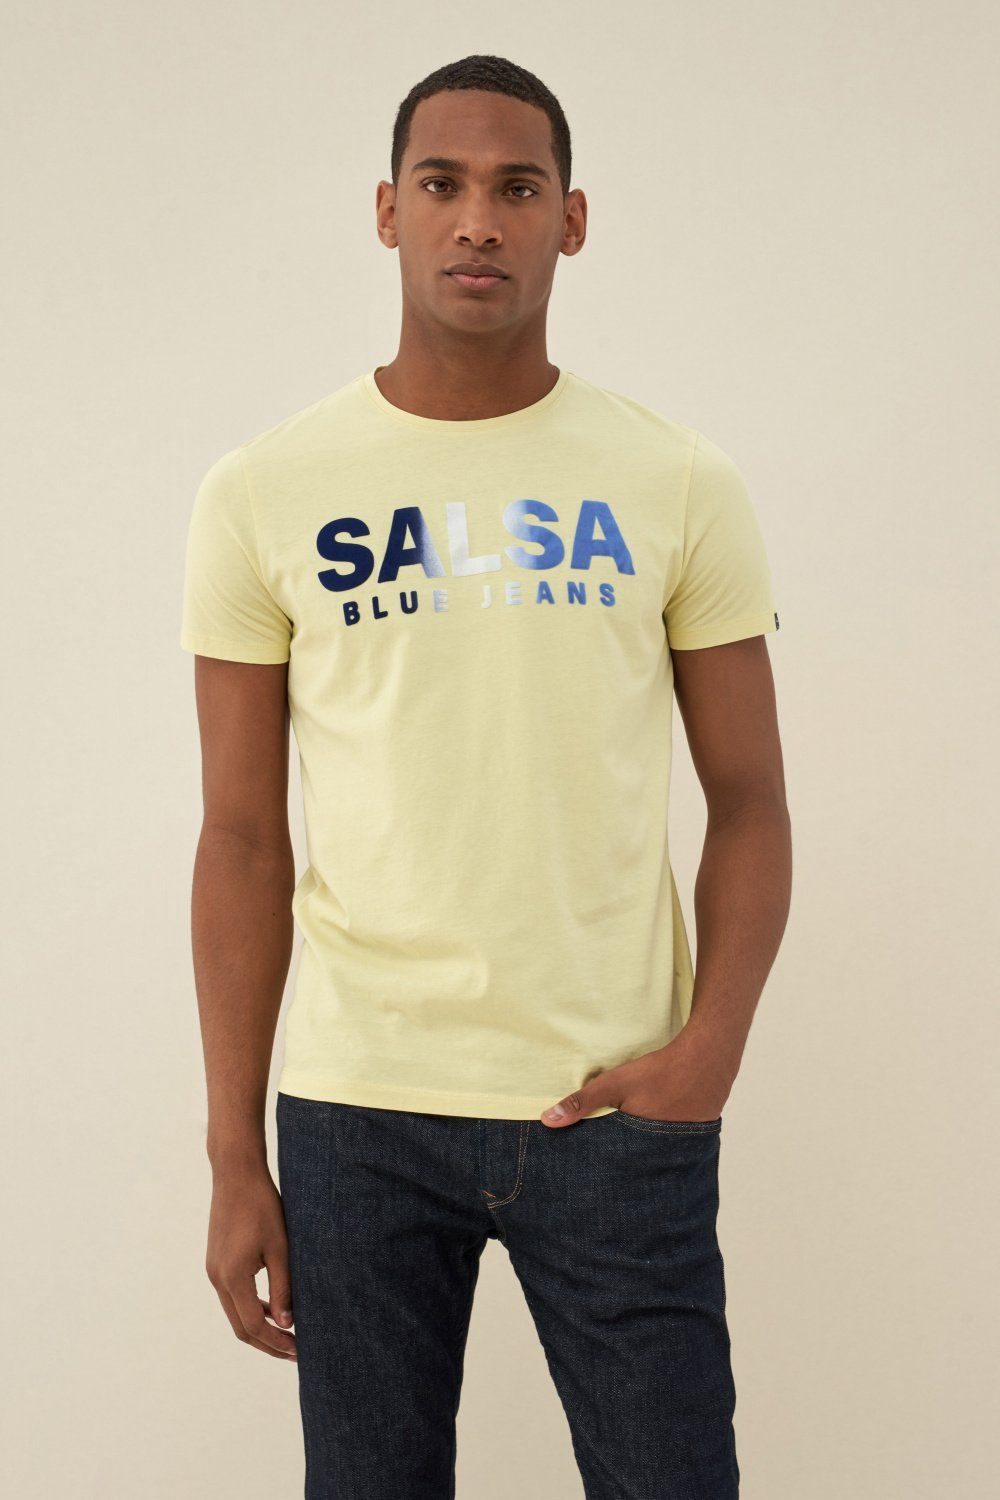 Camiseta logo degradado - Salsa